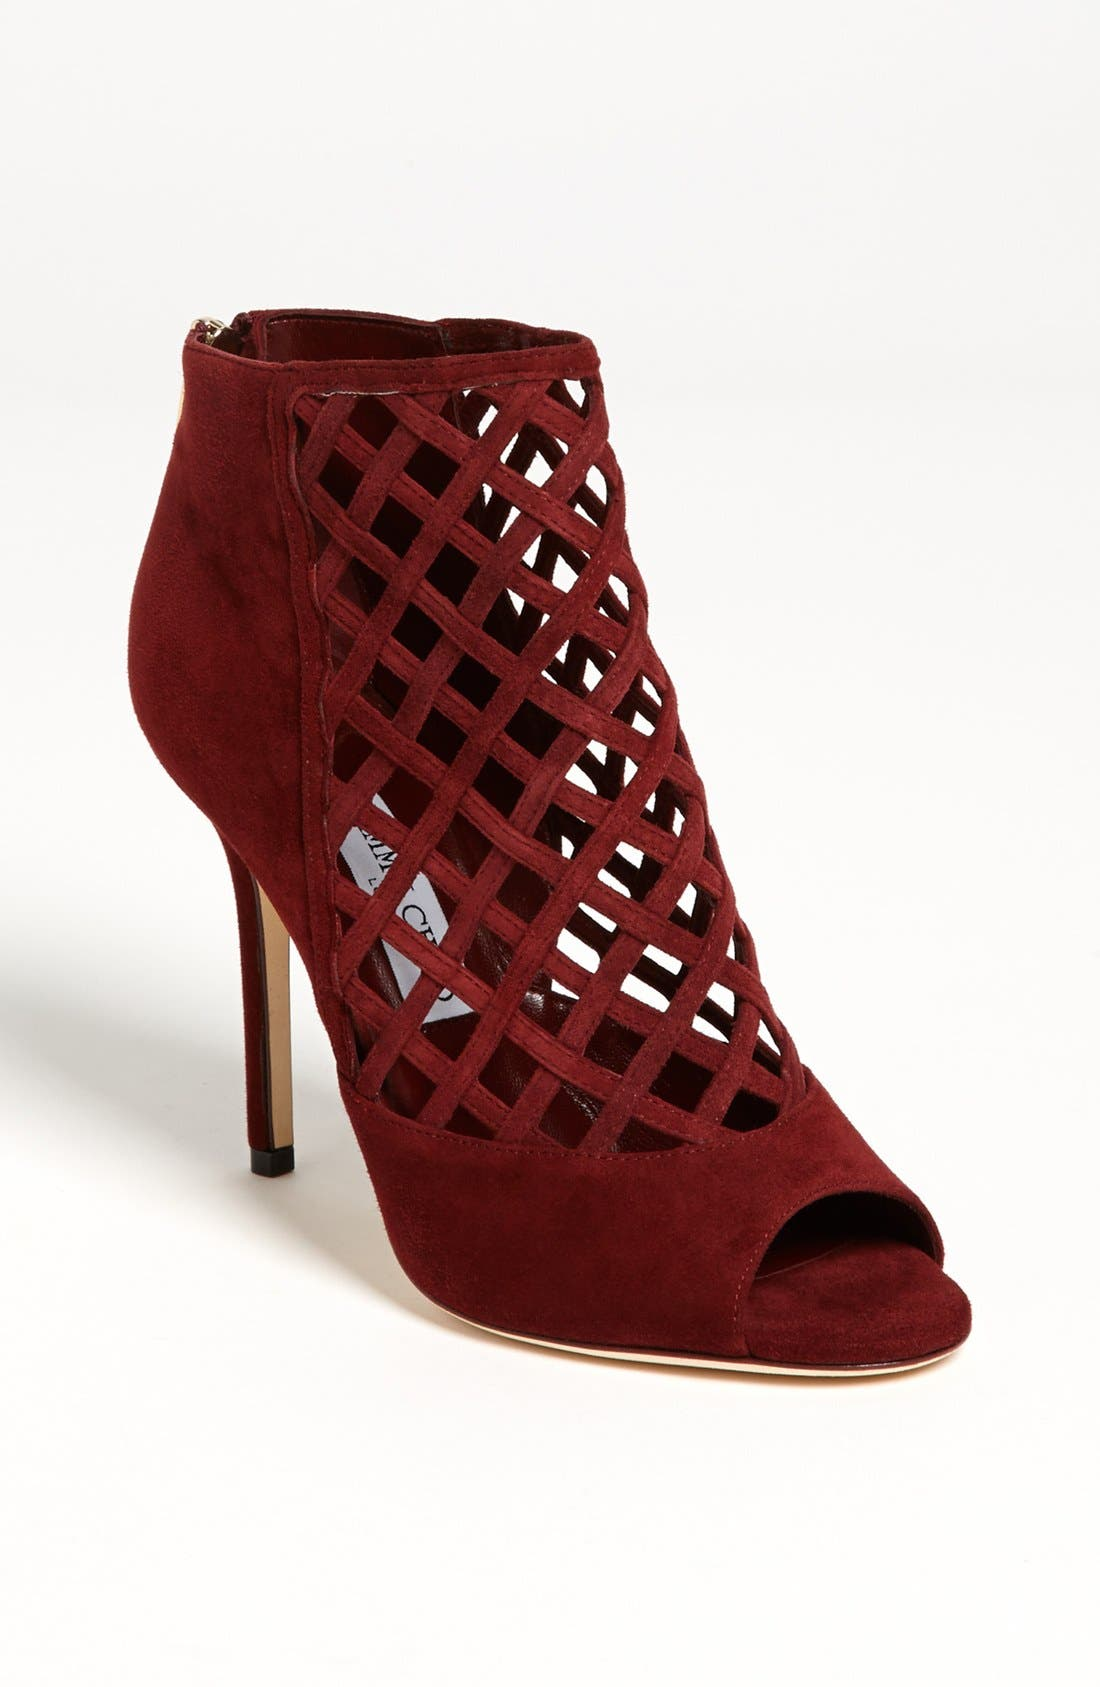 Alternate Image 1 Selected - Jimmy Choo 'Drift' Bootie